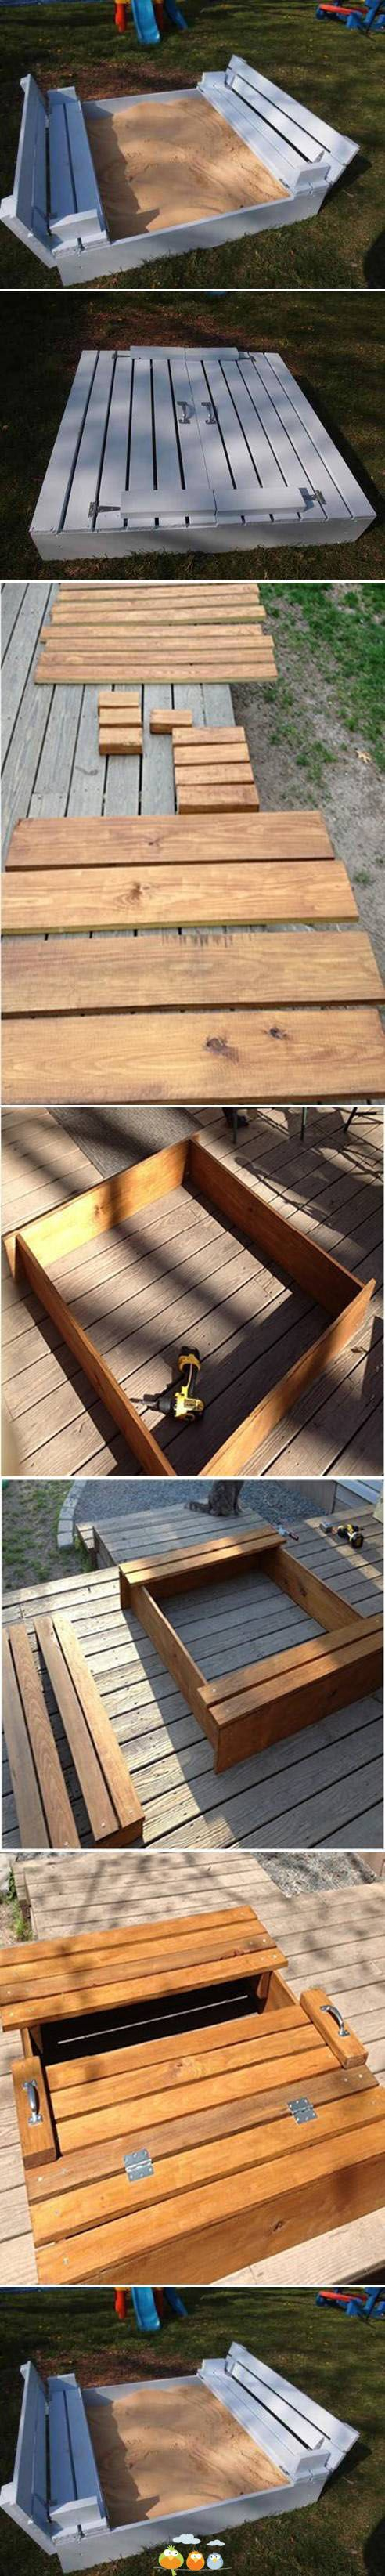 Great idea! wood pallet sandbox, with bench seats that unfold to cover the sandbox.